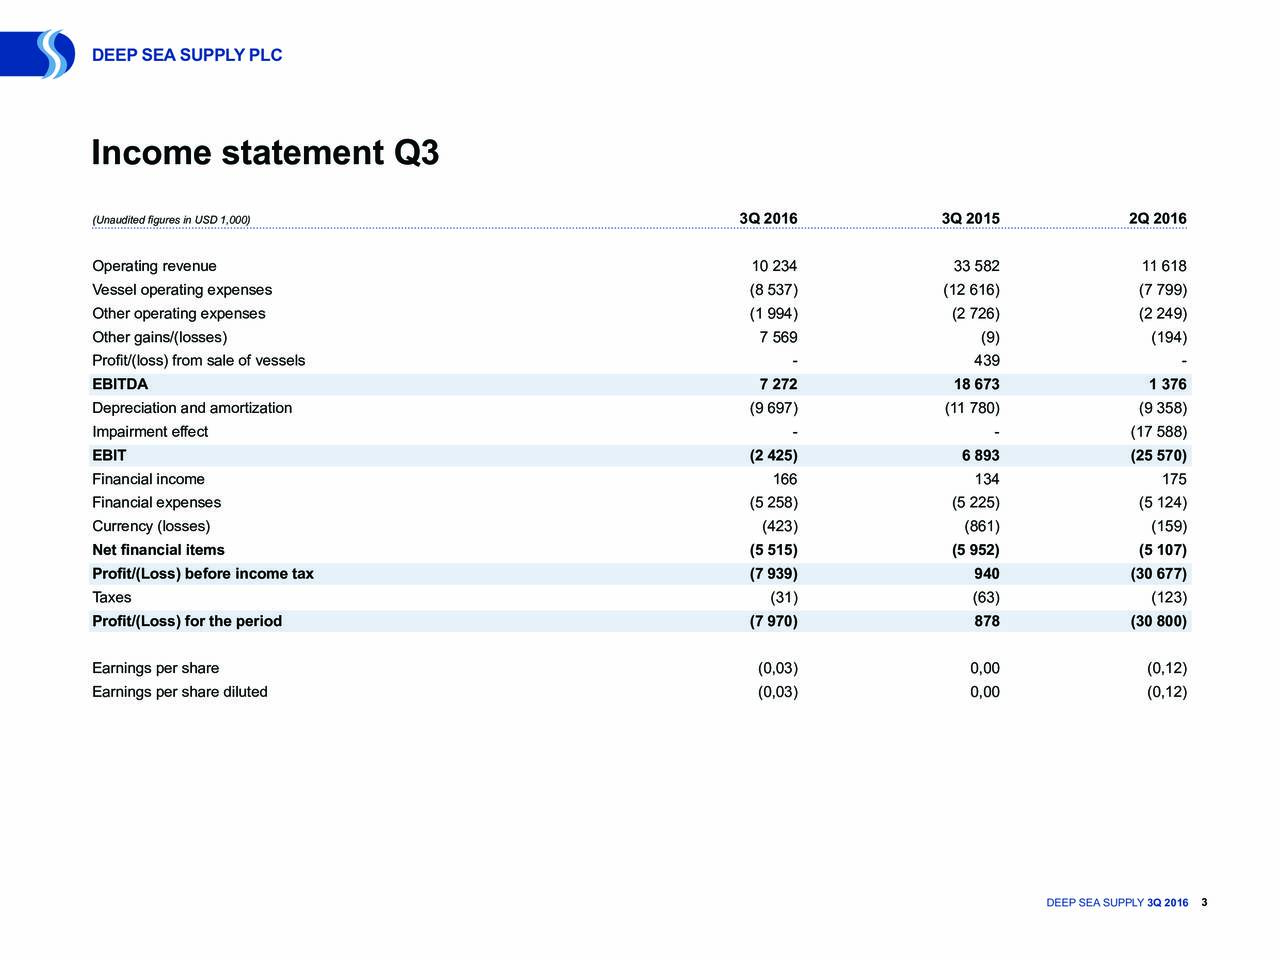 Income statement Q3 (Unaudited figures in USD 1,000) 3Q 2016 3Q 2015 2Q 2016 Operating revenue 10 234 33 582 11 618 Vessel operating expenses (8 537) (12 616) (7 799) Other operating expenses (1 994) (2 726) (2 249) Other gains/(losses) 7 569 (9) (194) Profit/(loss) from sale of vessels - 439 - EBITDA 7 272 18 673 1 376 Depreciation and amortization (9 697) (11 780) (9 358) Impairment effect - - (17 588) EBIT (2 425) 6 893 (25 570) Financial income 166 134 175 Financial expenses (5 258) (5 225) (5 124) Currency (losses) (423) (861) (159) Net financial items (5 515) (5 952) (5 107) Profit/(Loss) before income tax (7 939) 940 (30 677) Taxes (31) (63) (123) Profit/(Loss) for the period (7 970) 878 (30 800) Earnings per share (0,03) 0,00 (0,12) Earnings per share diluted (0,03) 0,00 (0,12) DEEP SEA SUPPLY 3Q 2016